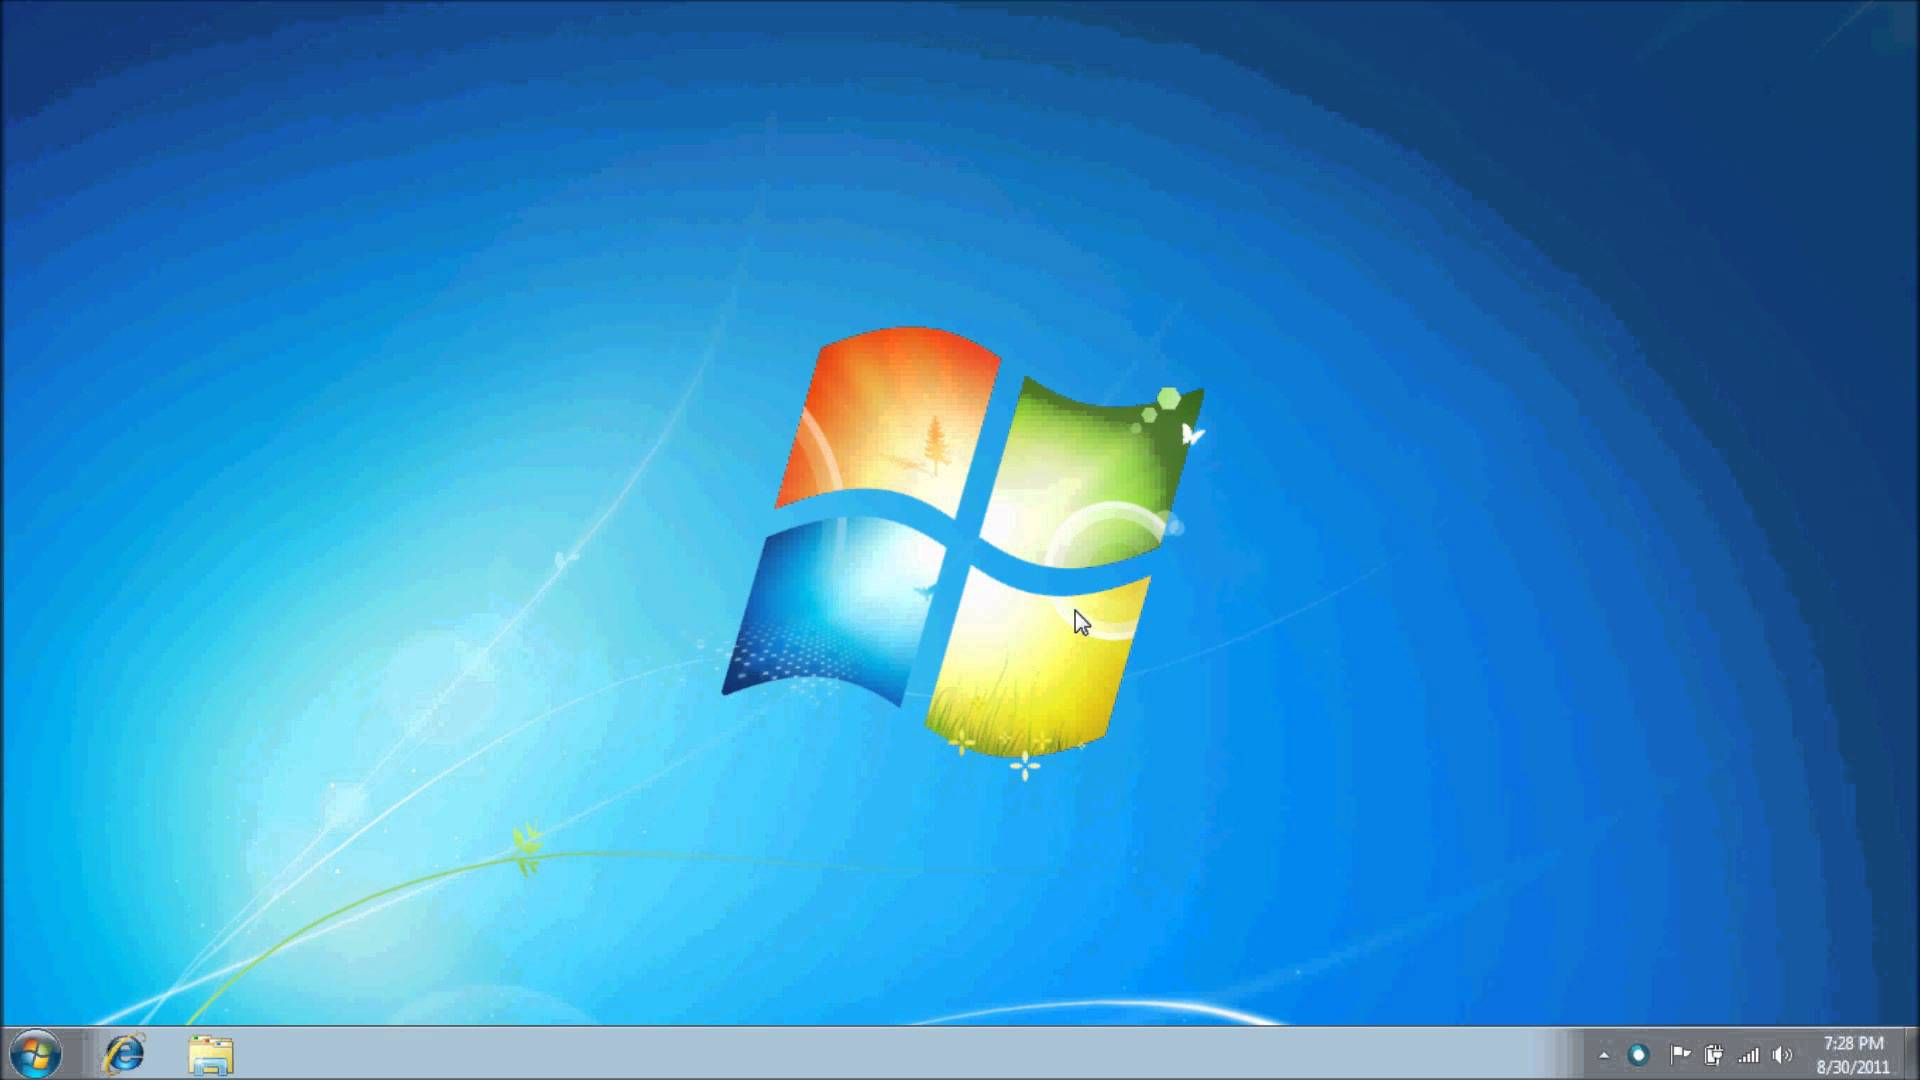 14 Restore All Icons Windows 7 Images